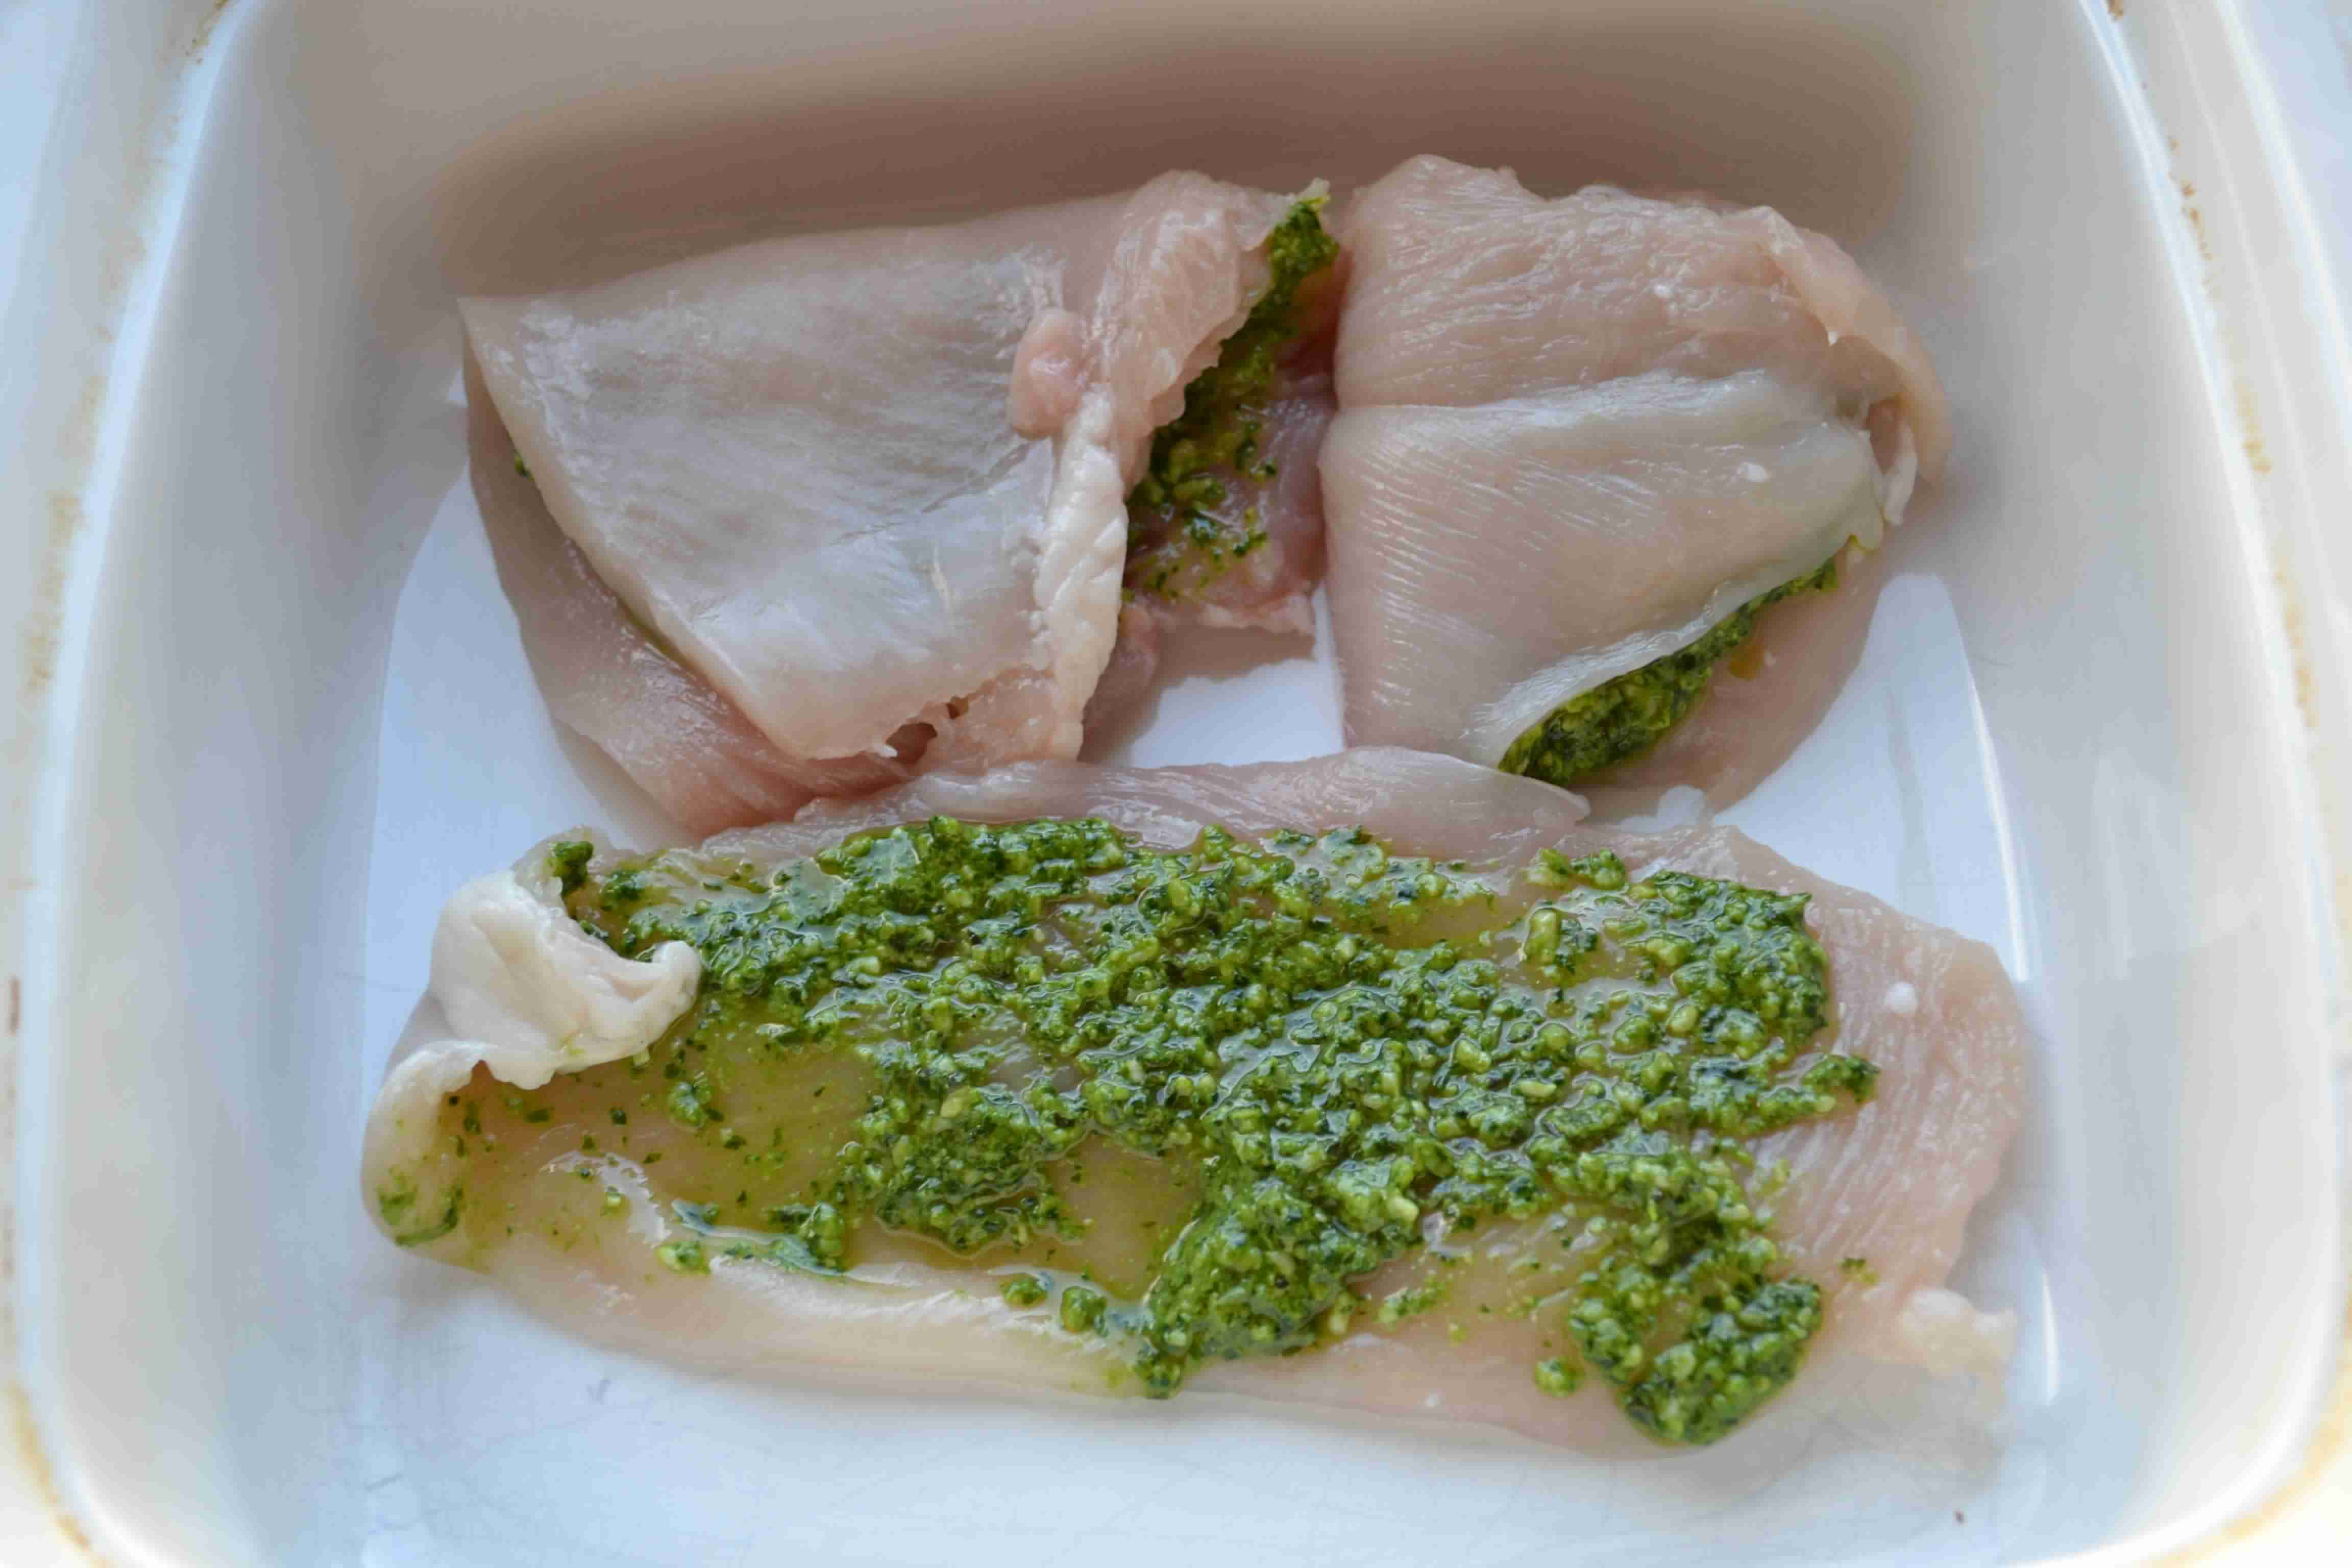 Grilled Pesto Stuffed Chicken with Balsalmic Glaze - Wholesomelicious